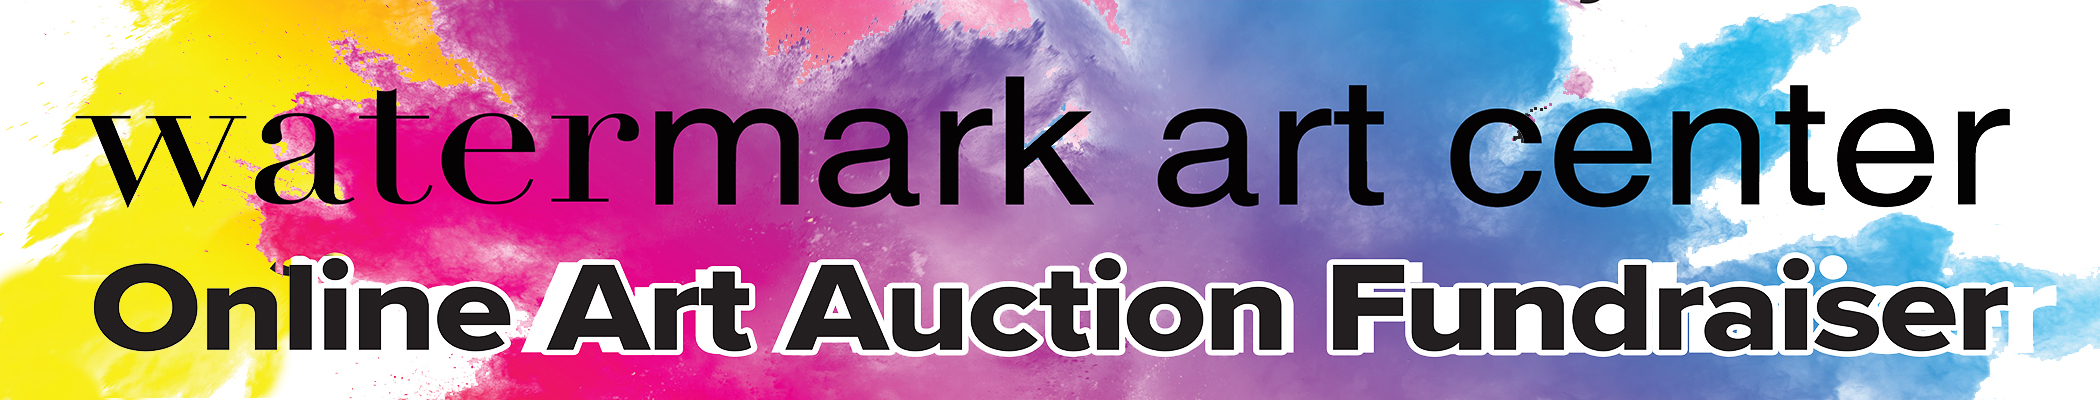 Art Auction Fundraiser